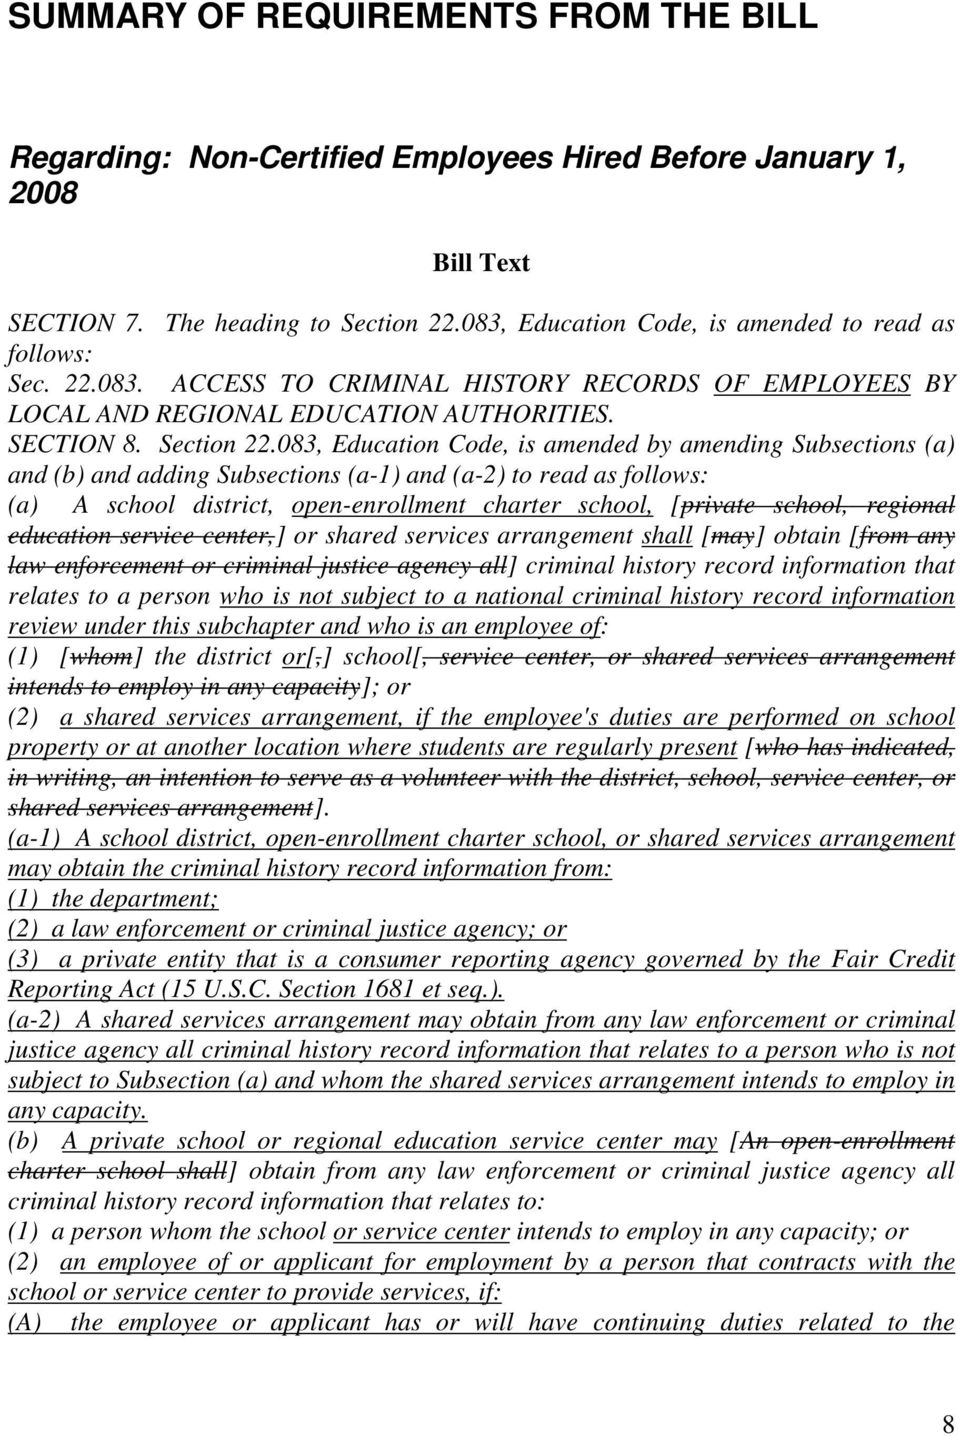 083, Education Code, is amended by amending Subsections (a) and (b) and adding Subsections (a-1) and (a-2) to read as follows: (a) A school district, open-enrollment charter school, [private school,